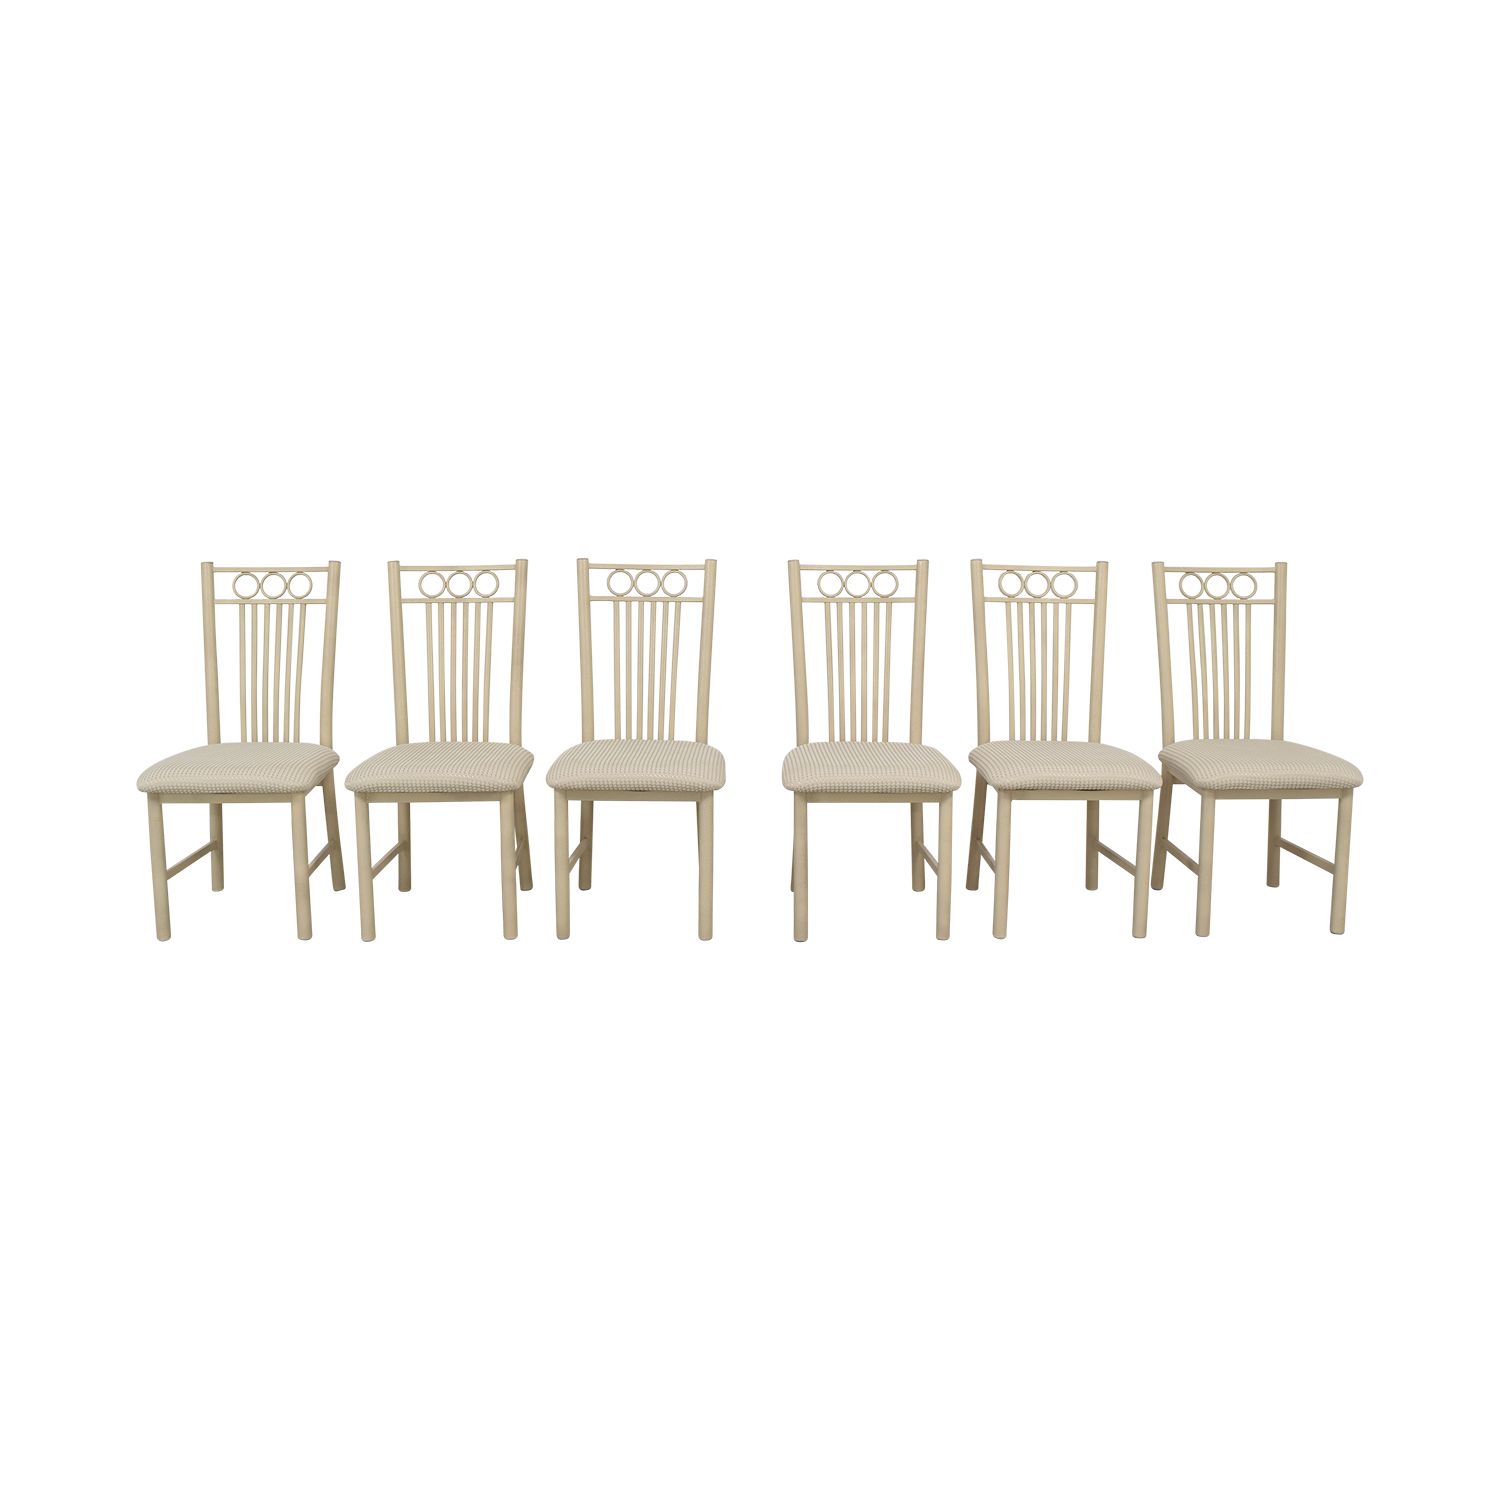 Raymour & Flanigan Raymour & Flanigan Dining Chairs